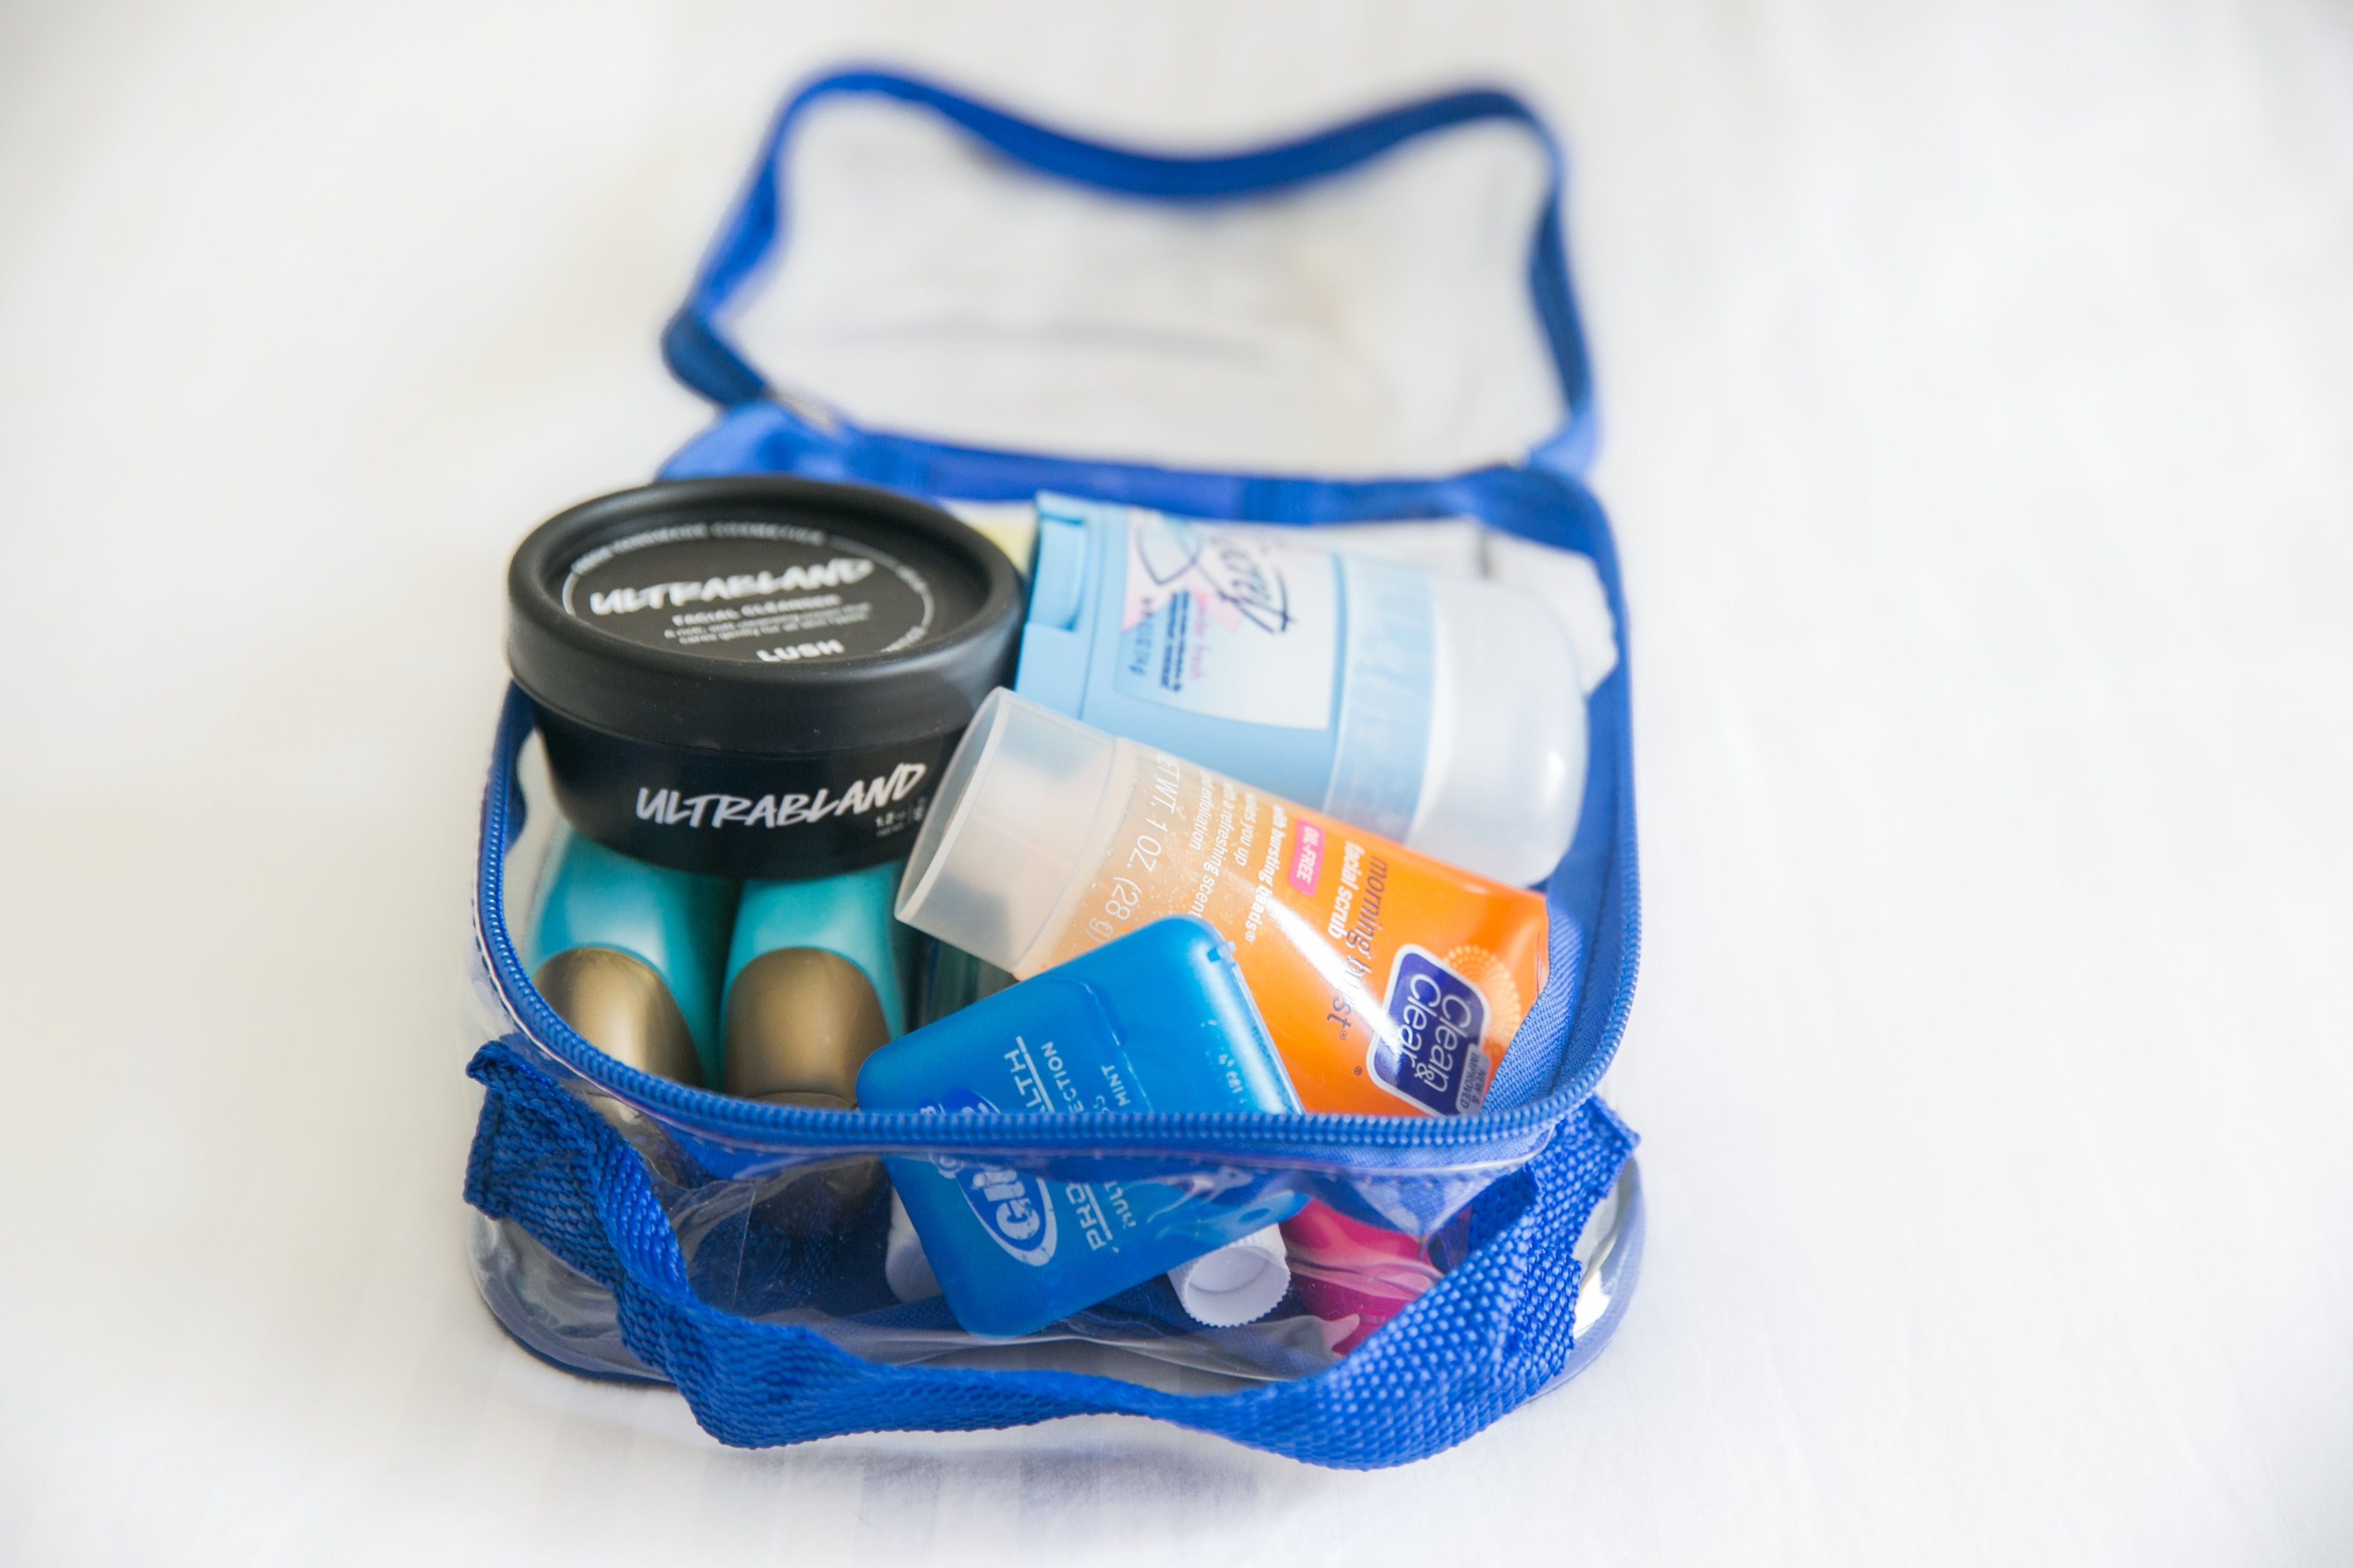 Toiletries packed in an extra small packing cube